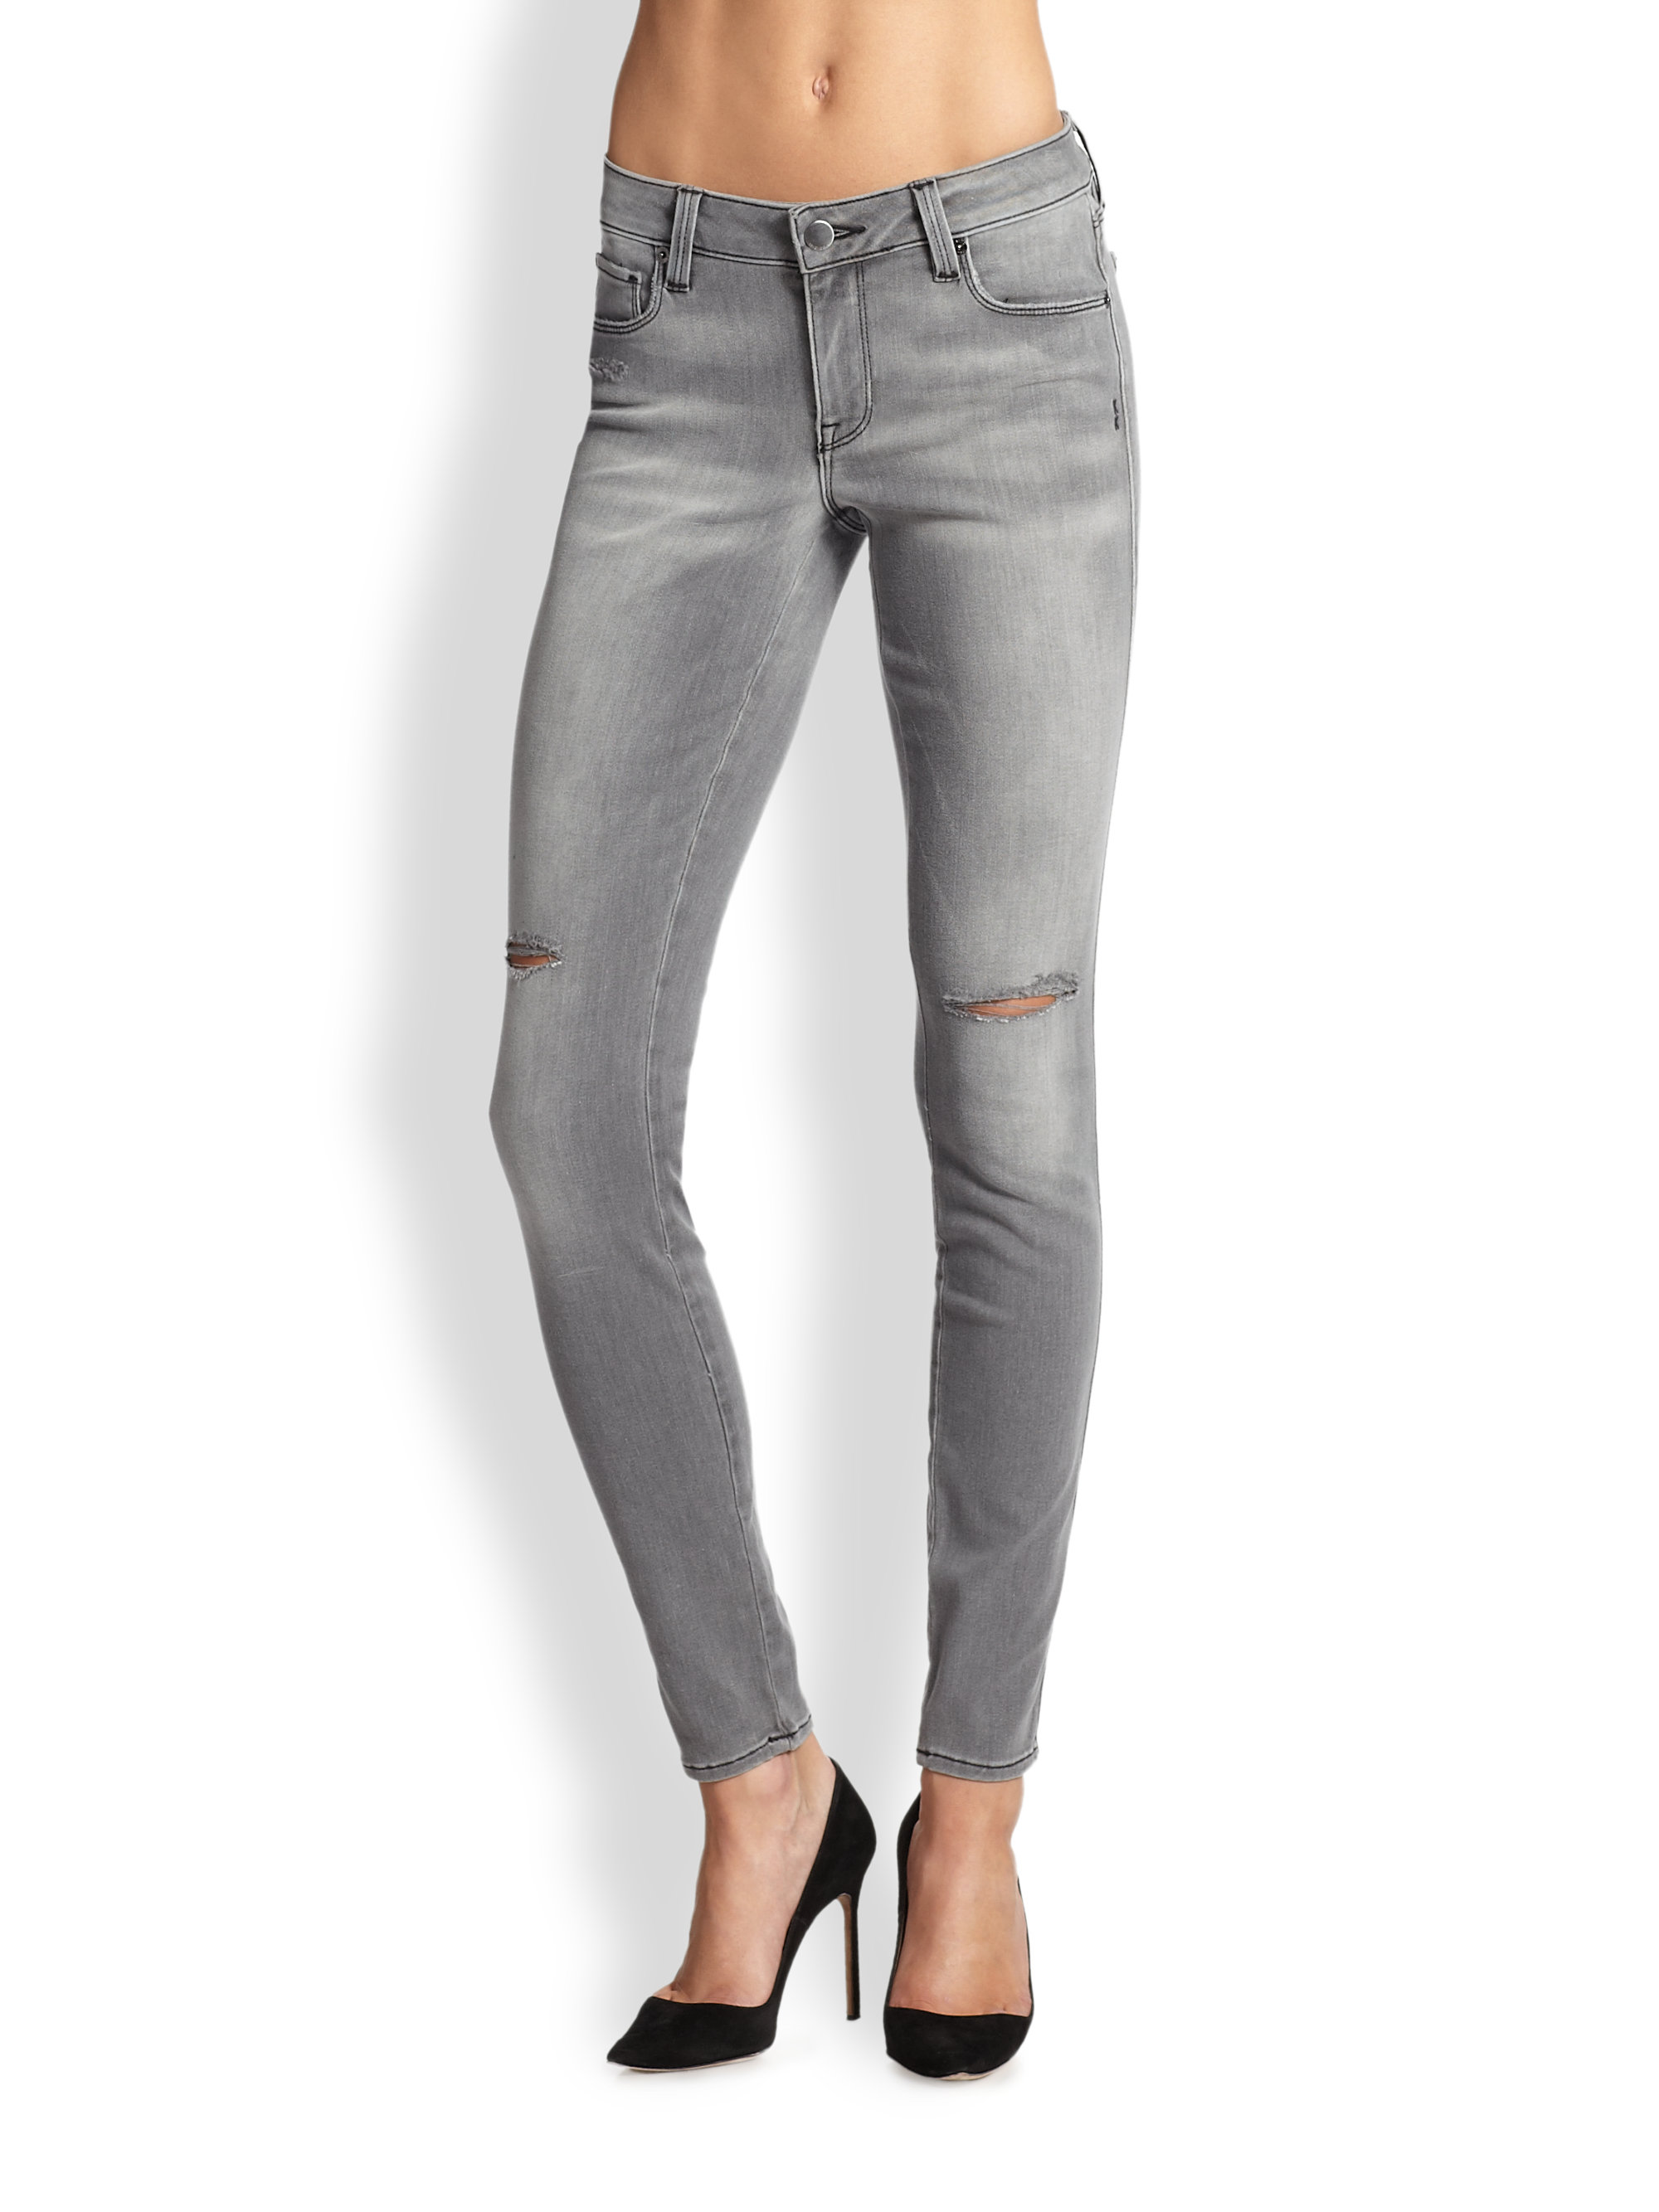 Genetic denim Shiya Cigarette Distressed Jeans in Gray | Lyst